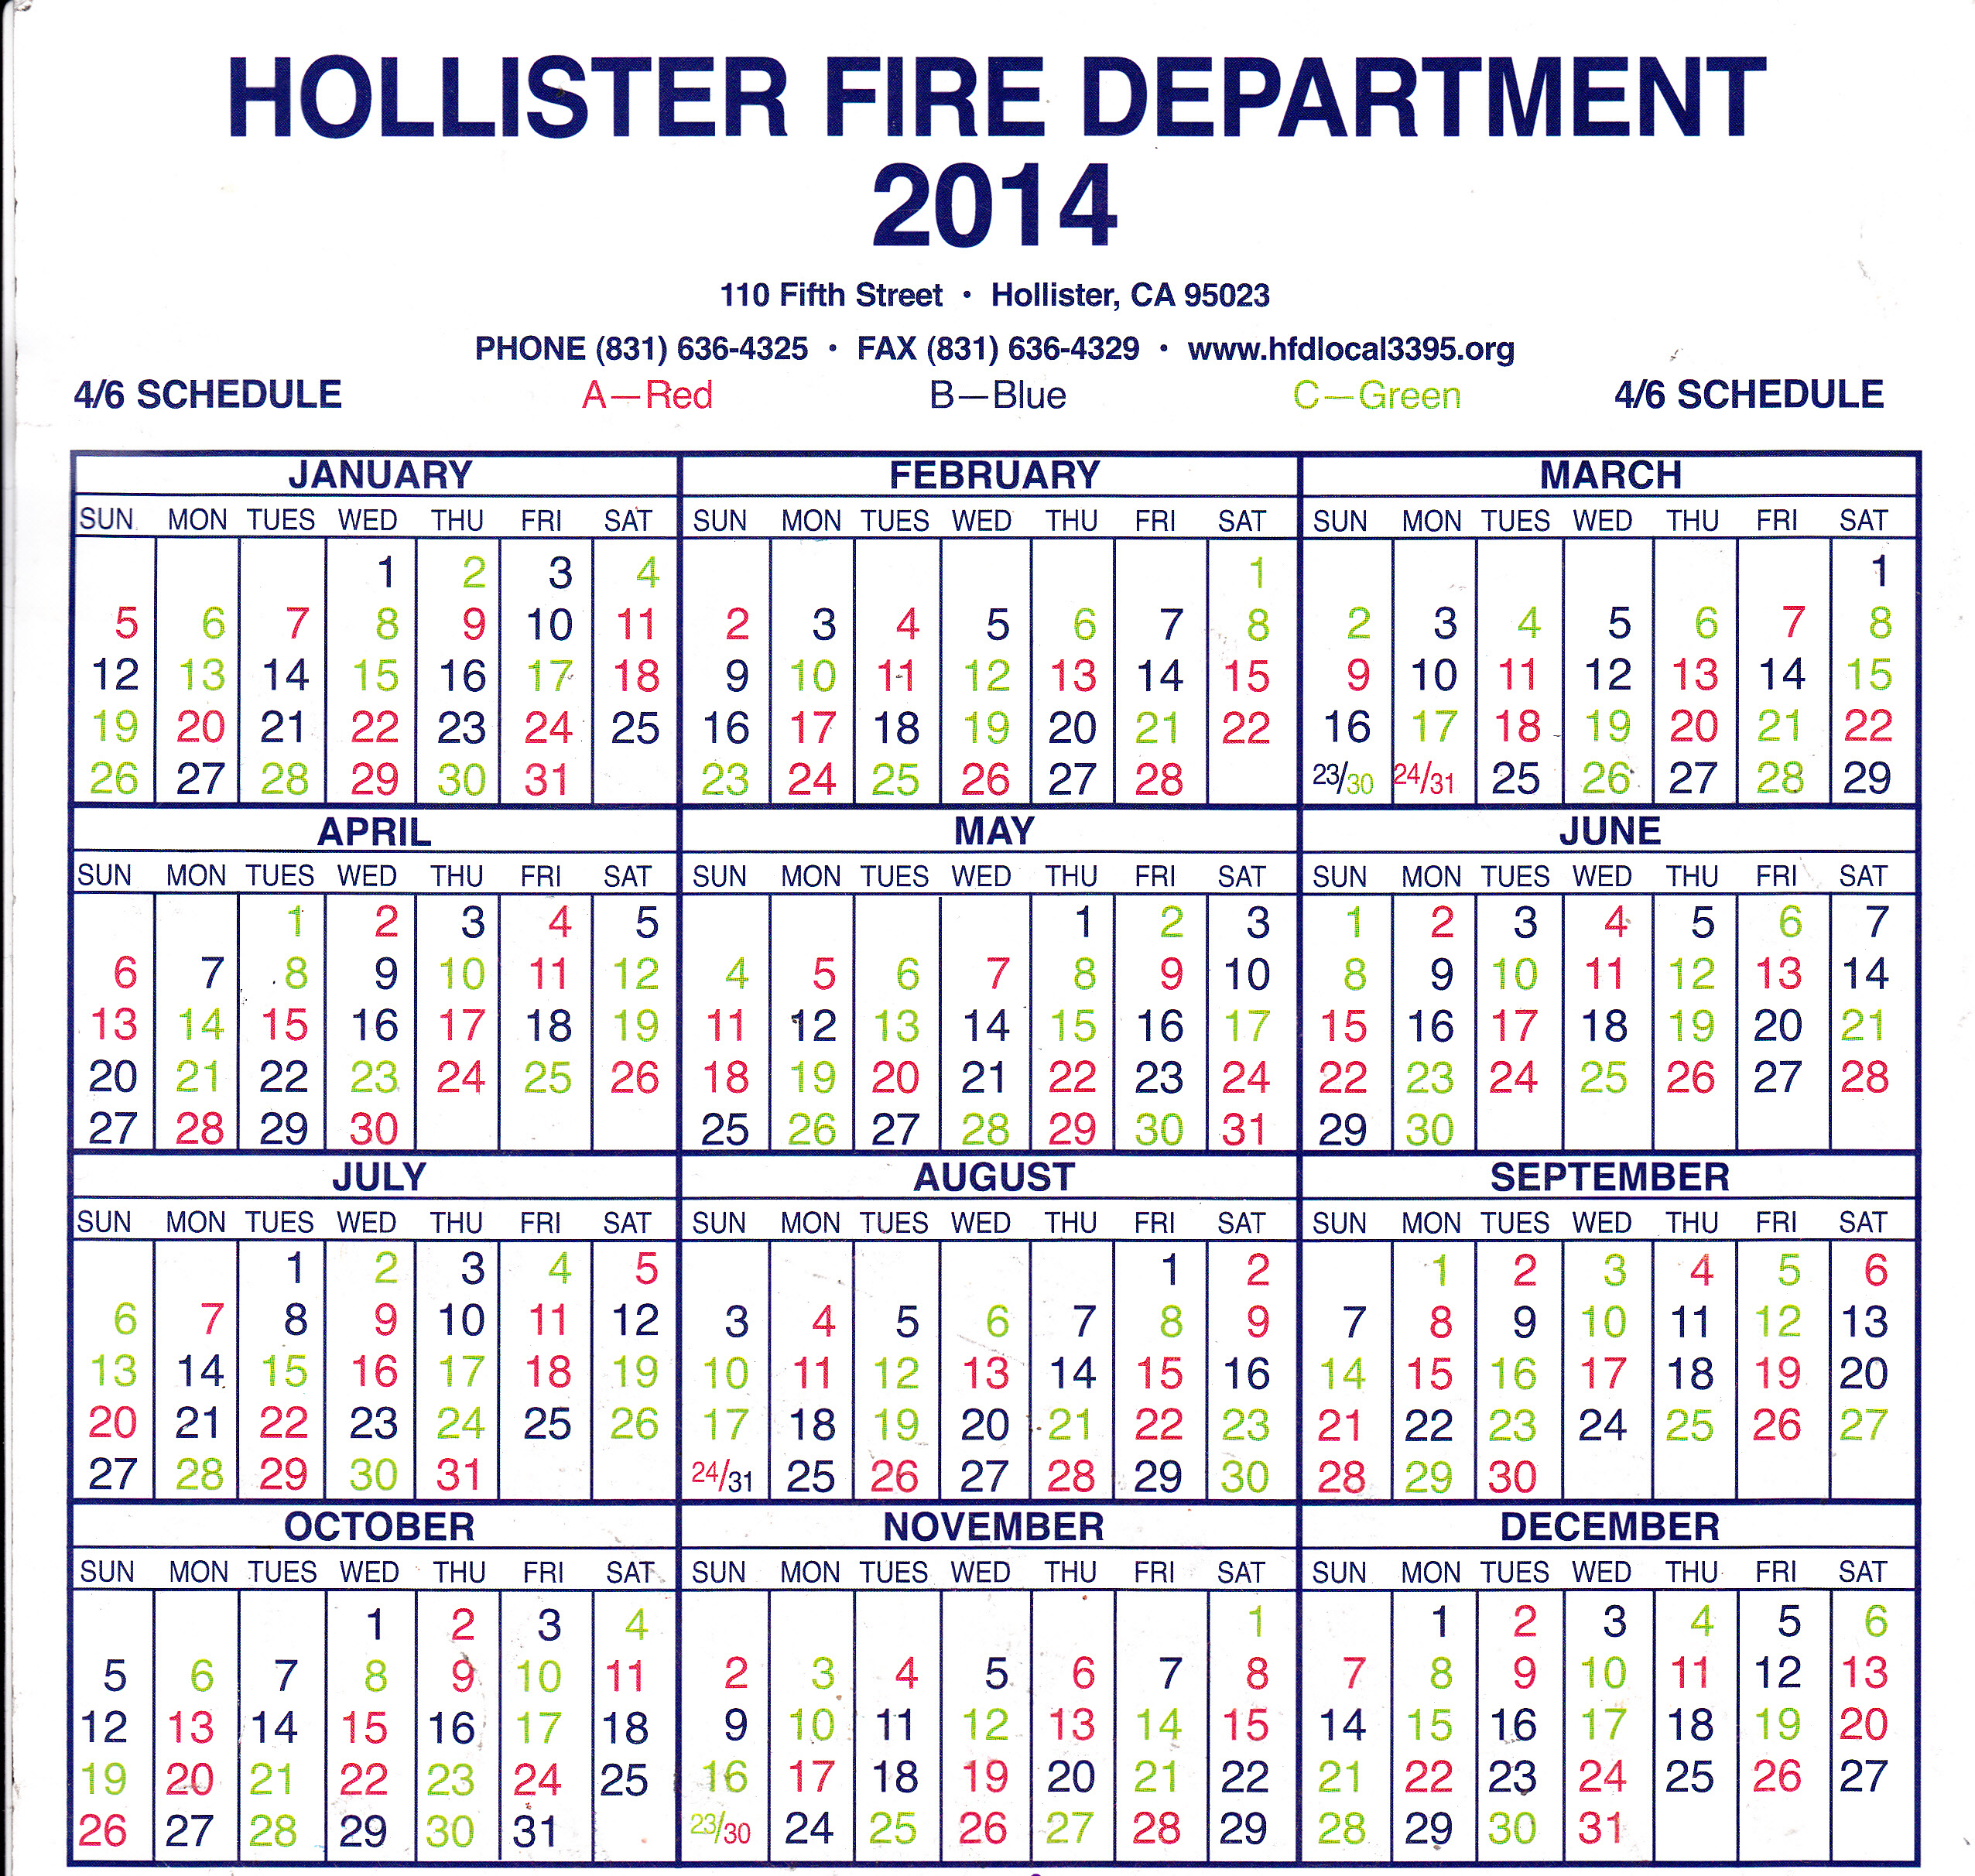 Hollister Fire Department Local 3395 - Shift Calendar